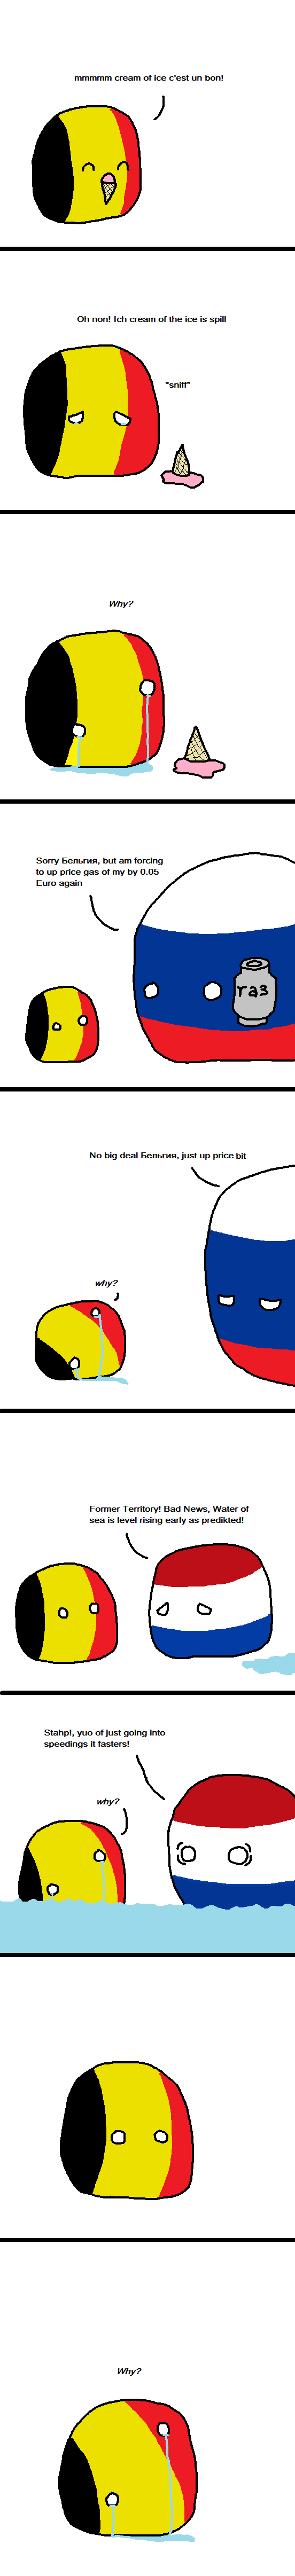 Quarterfinals 2018 Fifa World Cup Russia Illustrated By Polandball